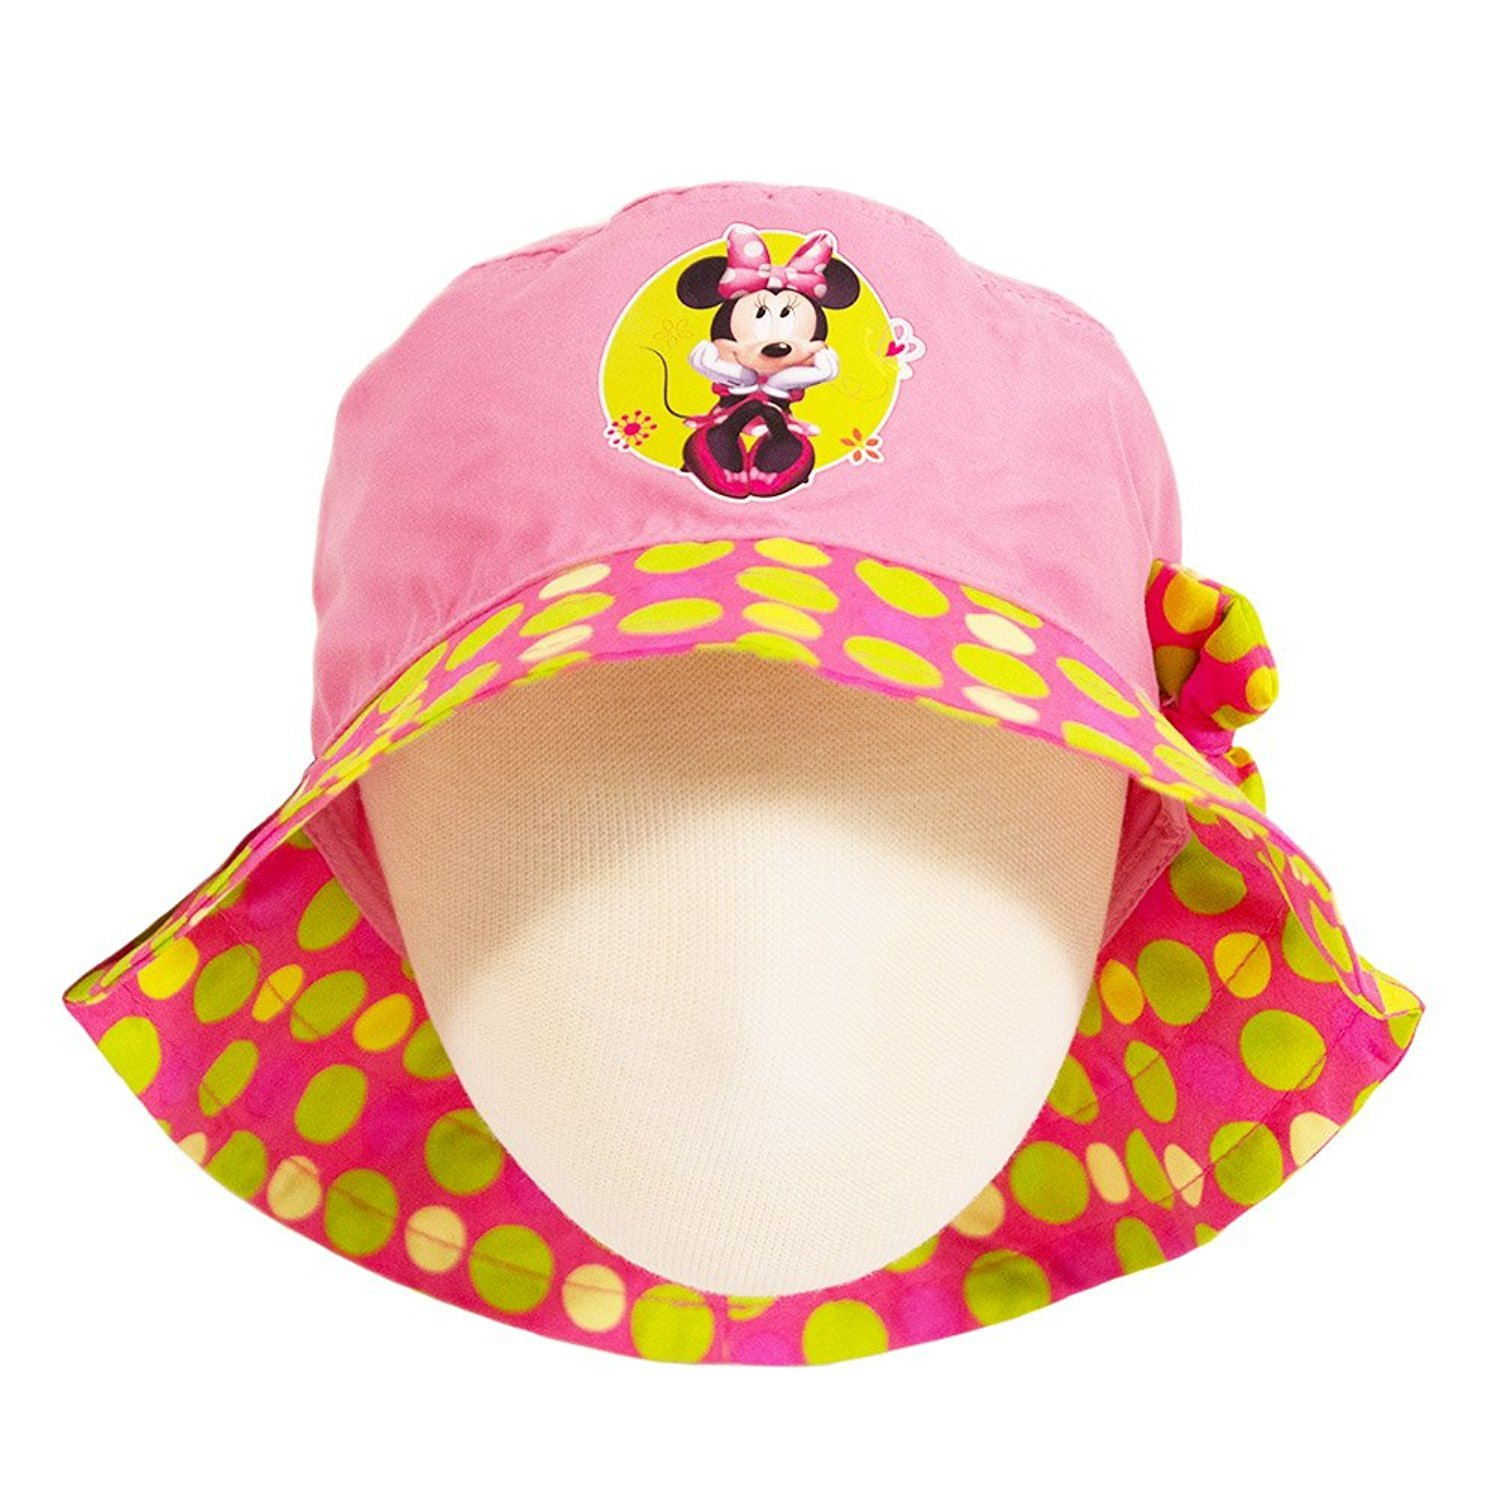 de866472 Amazon.com: Minnie Mouse Disney Polka Dot Little Girls Toddlers Bucket Hat:  Clothing